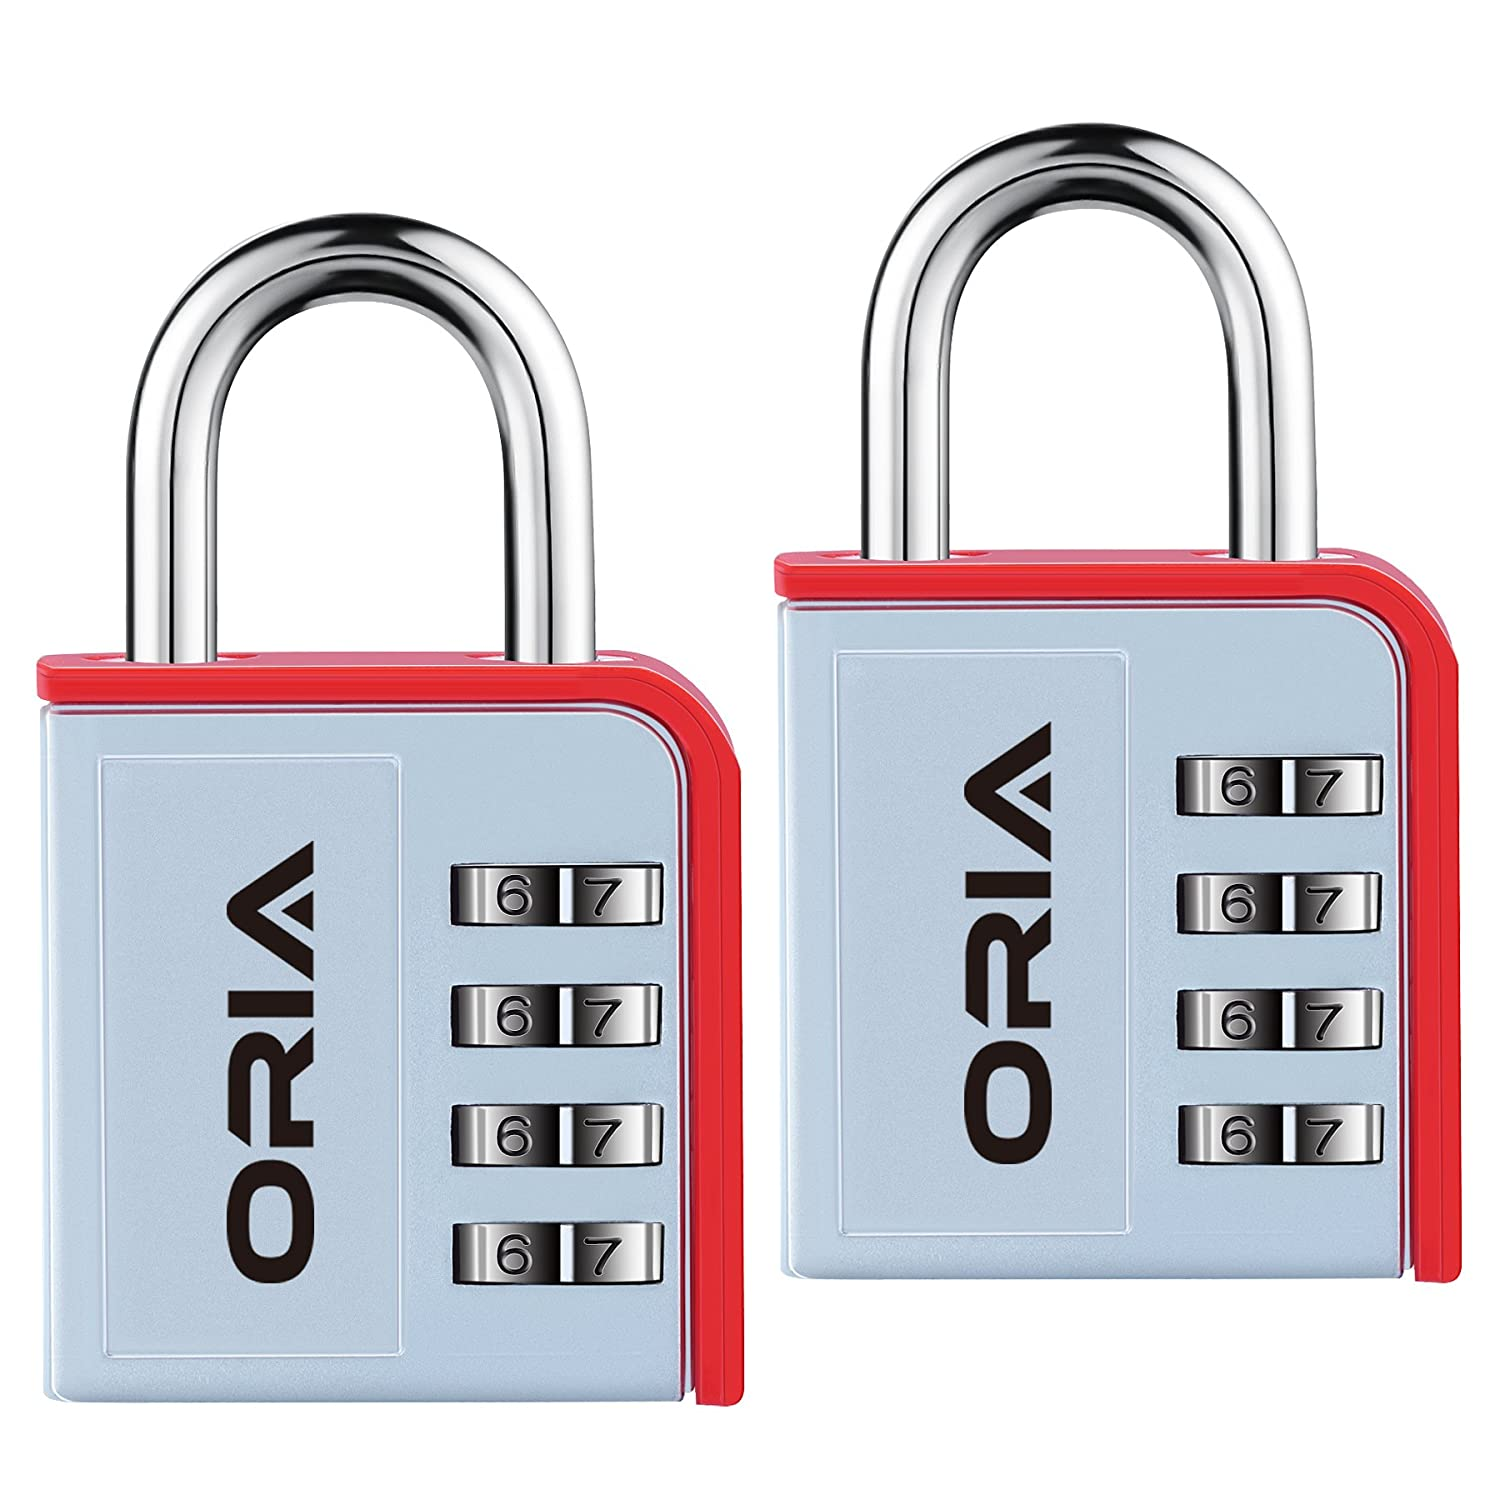 ORIA Combination Lock, 4 Digit Padlock, Gym or Travel Lock, with Waterproof  and Plated Steel Material Design for School, Case, Sport Locker, Toolbox,